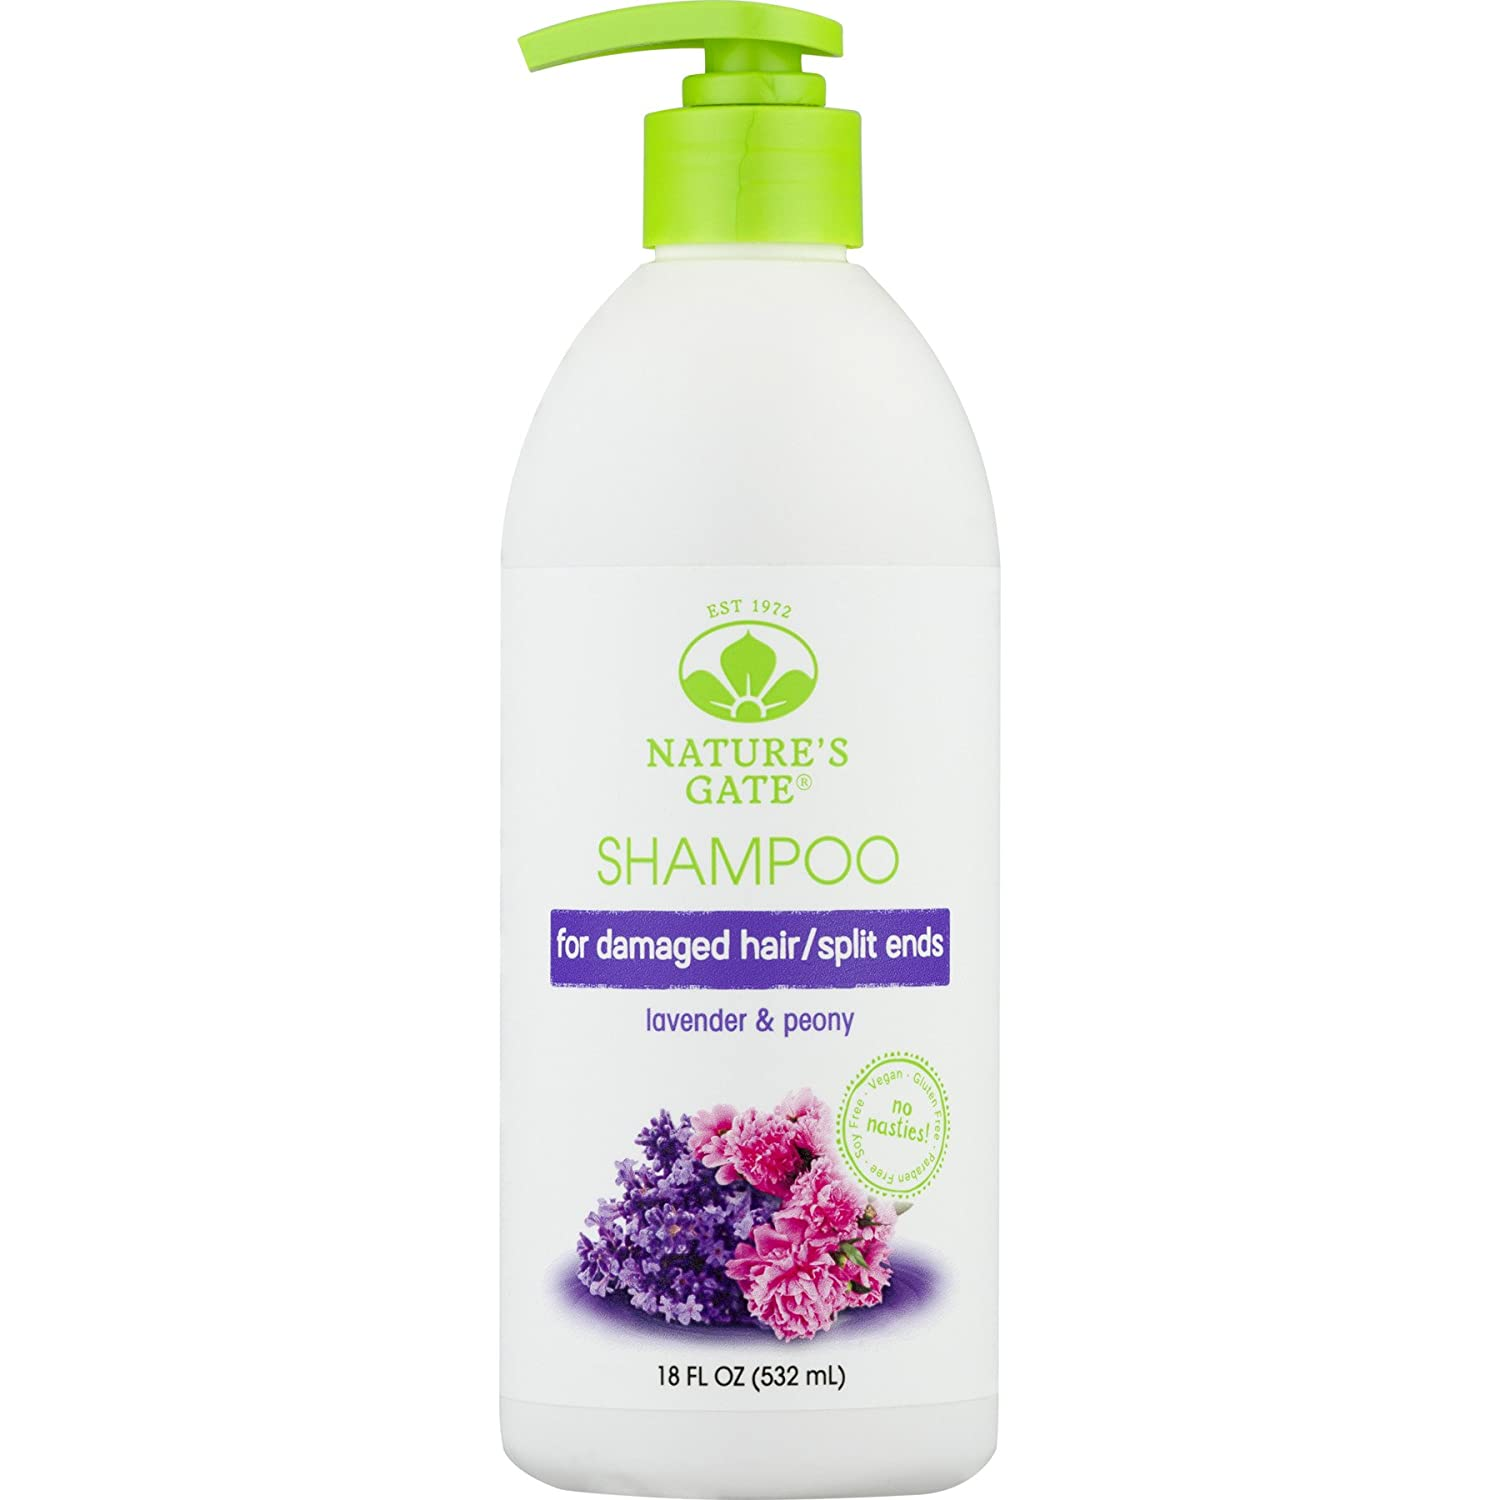 Nature's Gate Natural Lavender and Peony Replenishing Daily Shampoo for Calming Hair and Scalp, Split End Treatment, Vegan, Non GMO, Gluten Free, Soy Free, Paraben Free, Cruelty Free, 18 Fluid Ounces